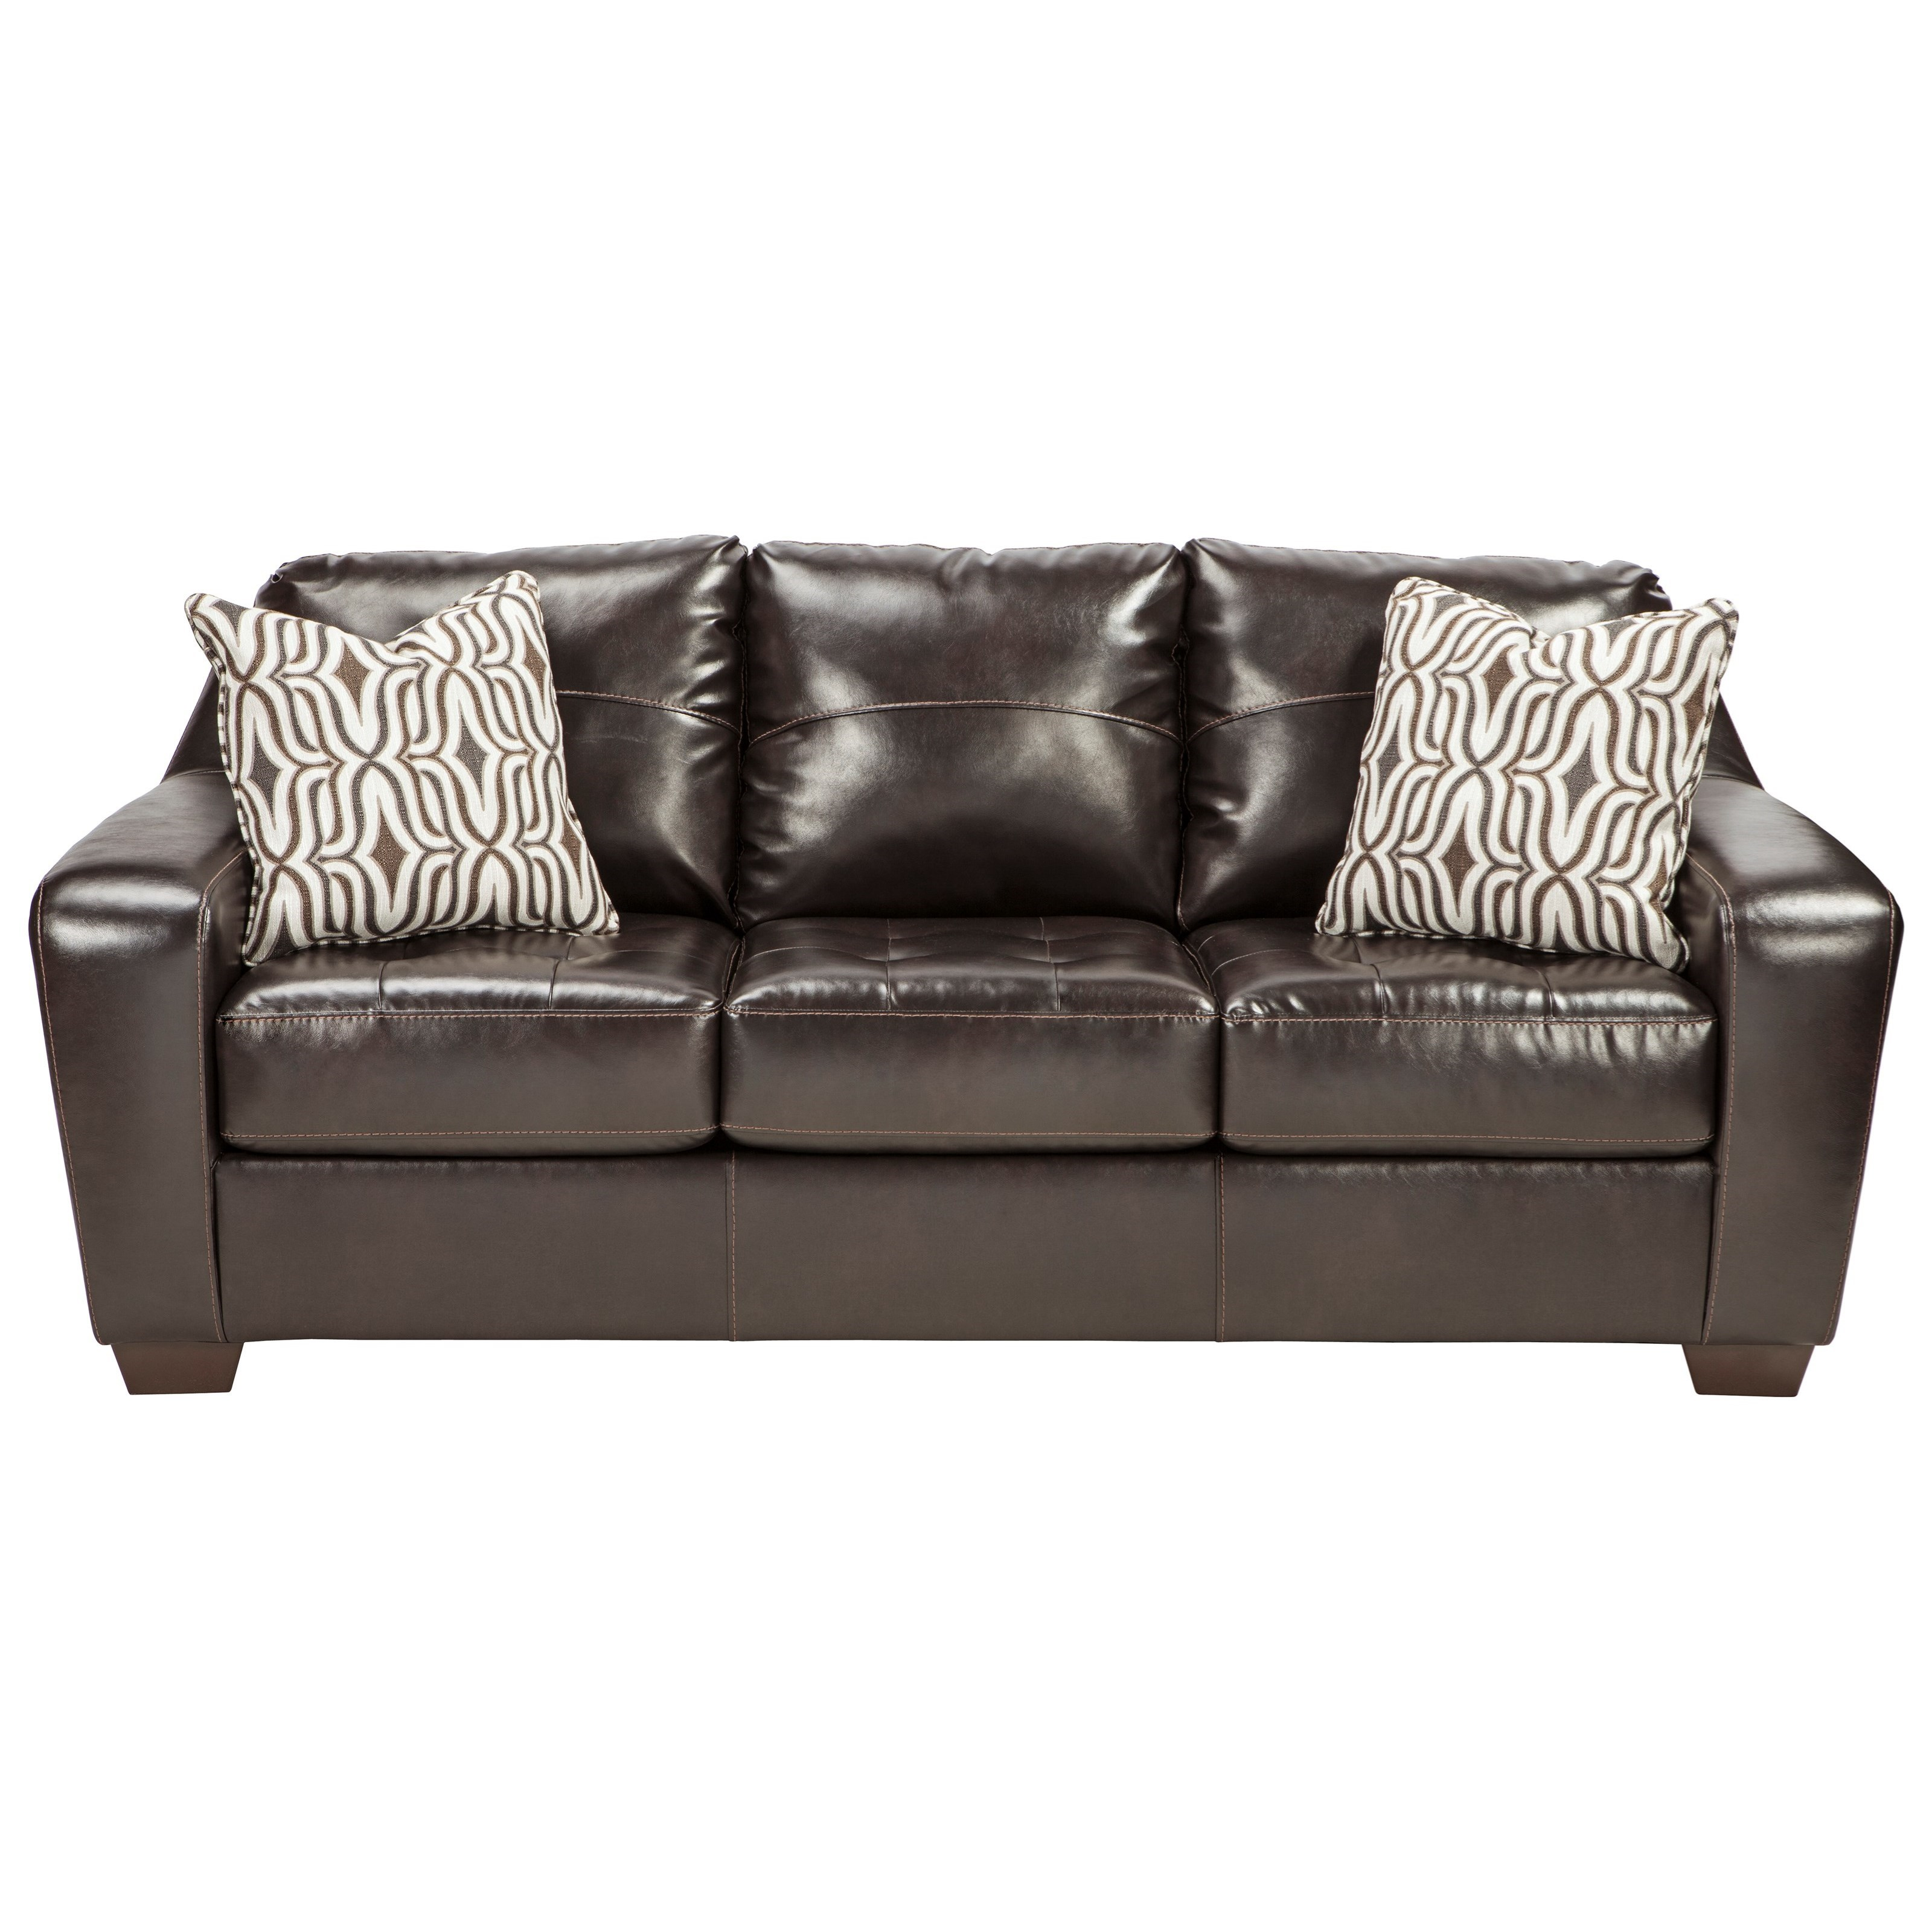 Benchcraft Coppell DuraBlend® Sofa - Item Number: 5900138